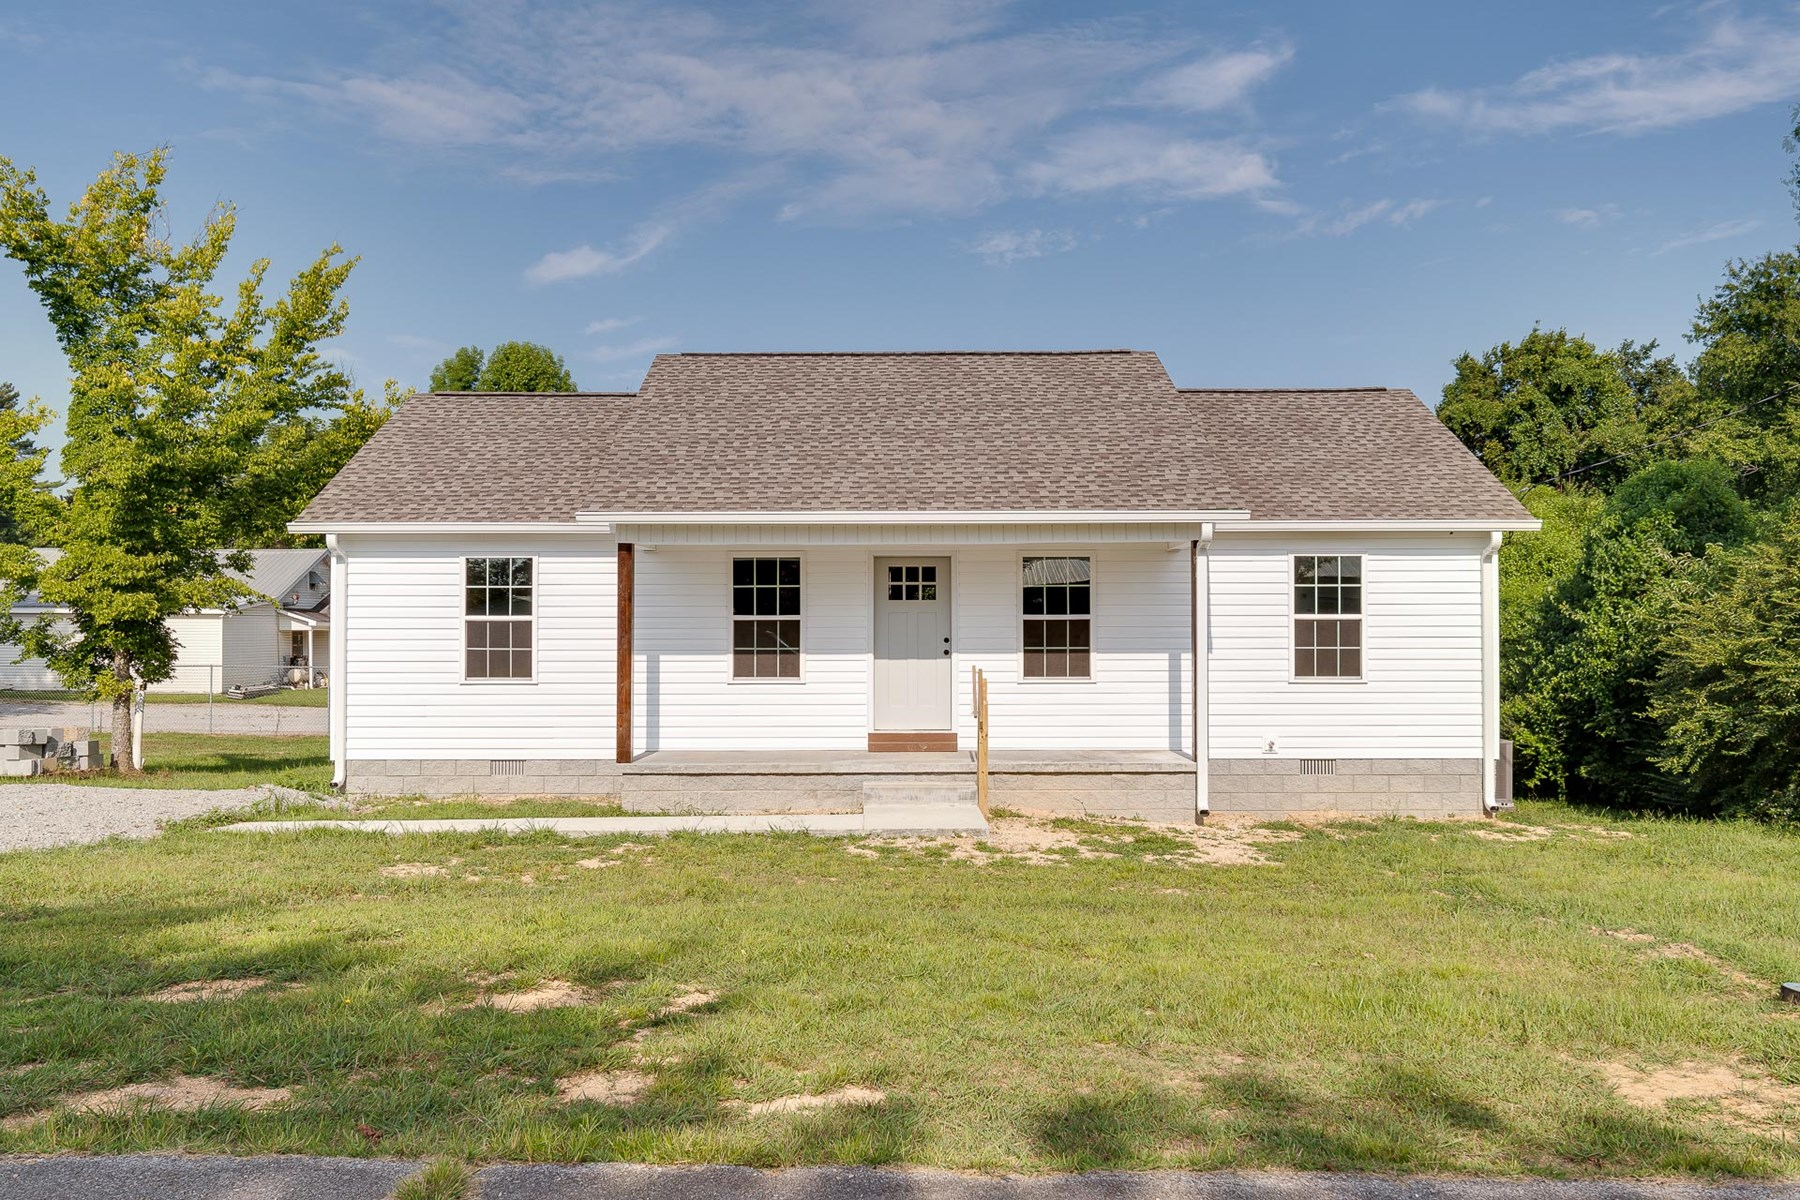 New Built Home in Town for Sale in Hohenwald, TN